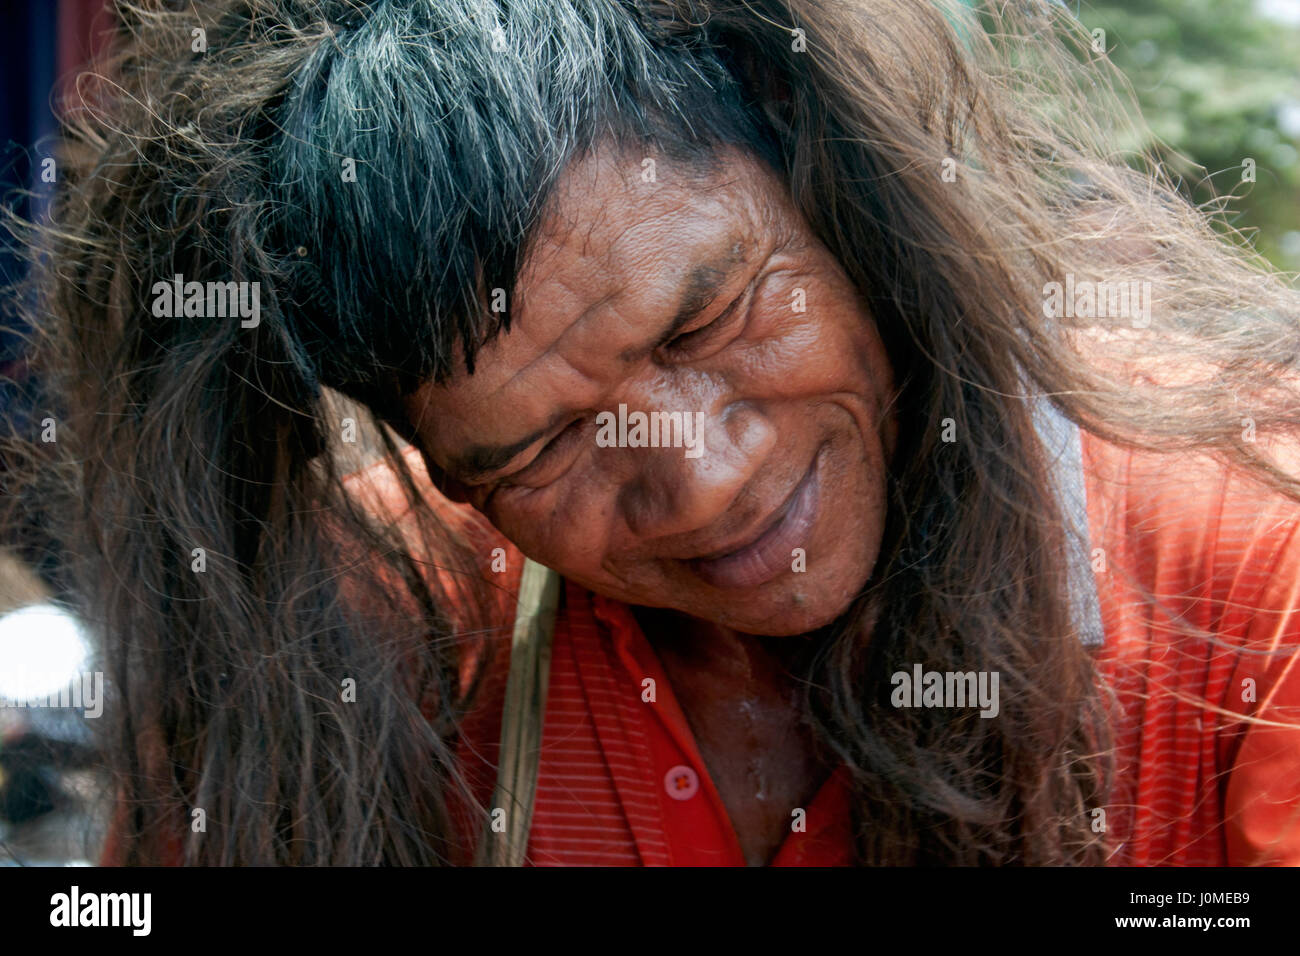 A Cambodian man is wearing a wig while celebrating Khmer New Year in Chork Village, Tboung Province, Cambodia. Stock Photo